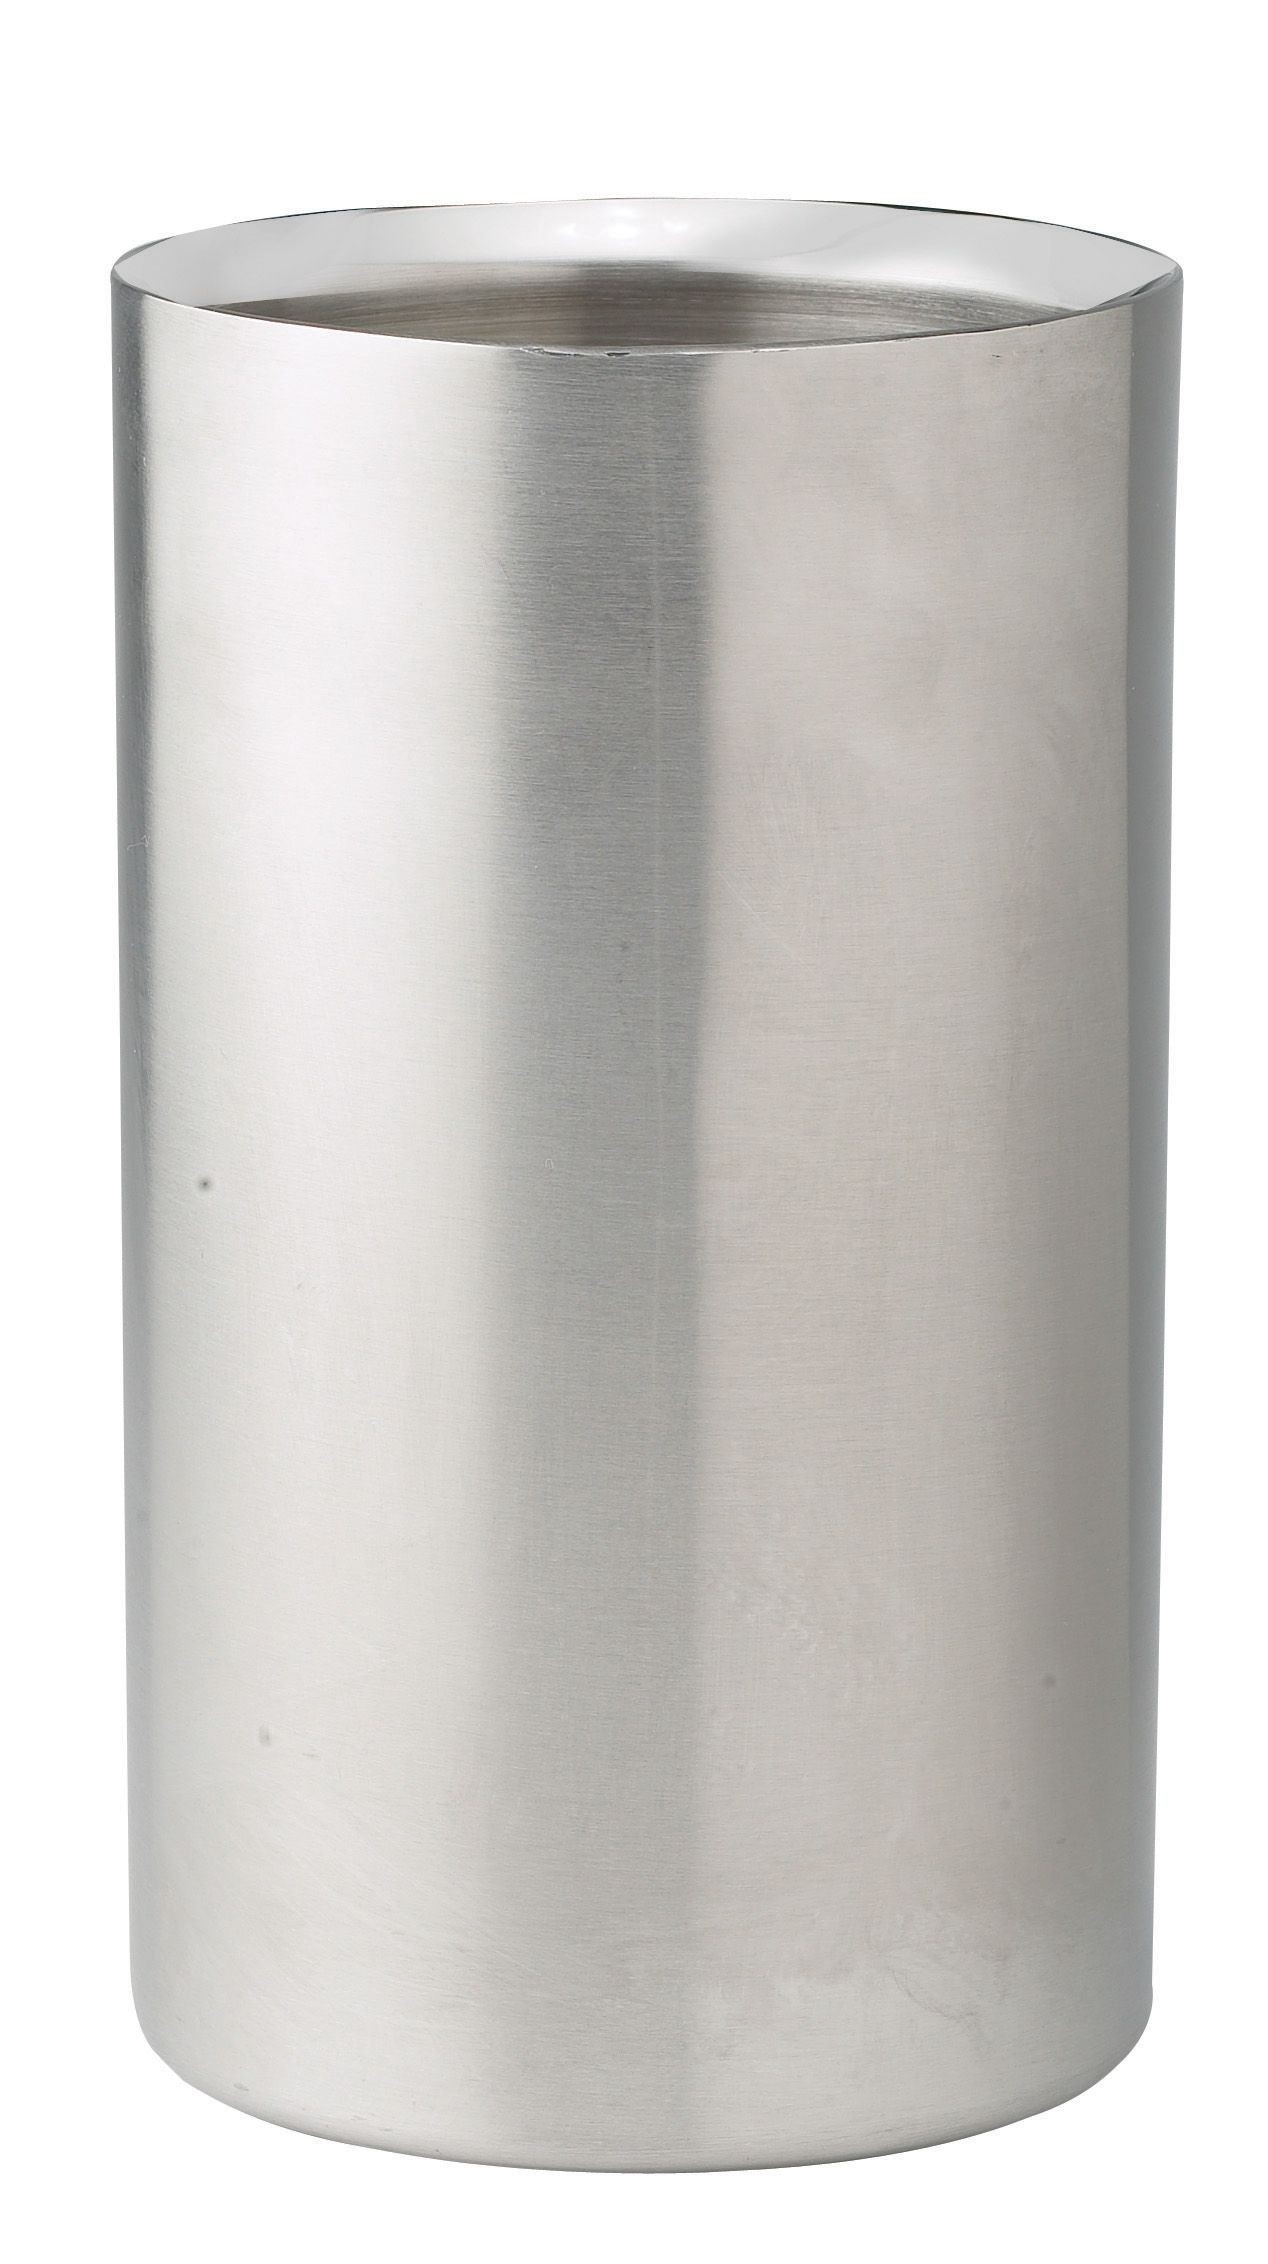 Winco WC-5 Double Wall Stainless Steel Wine Cooler